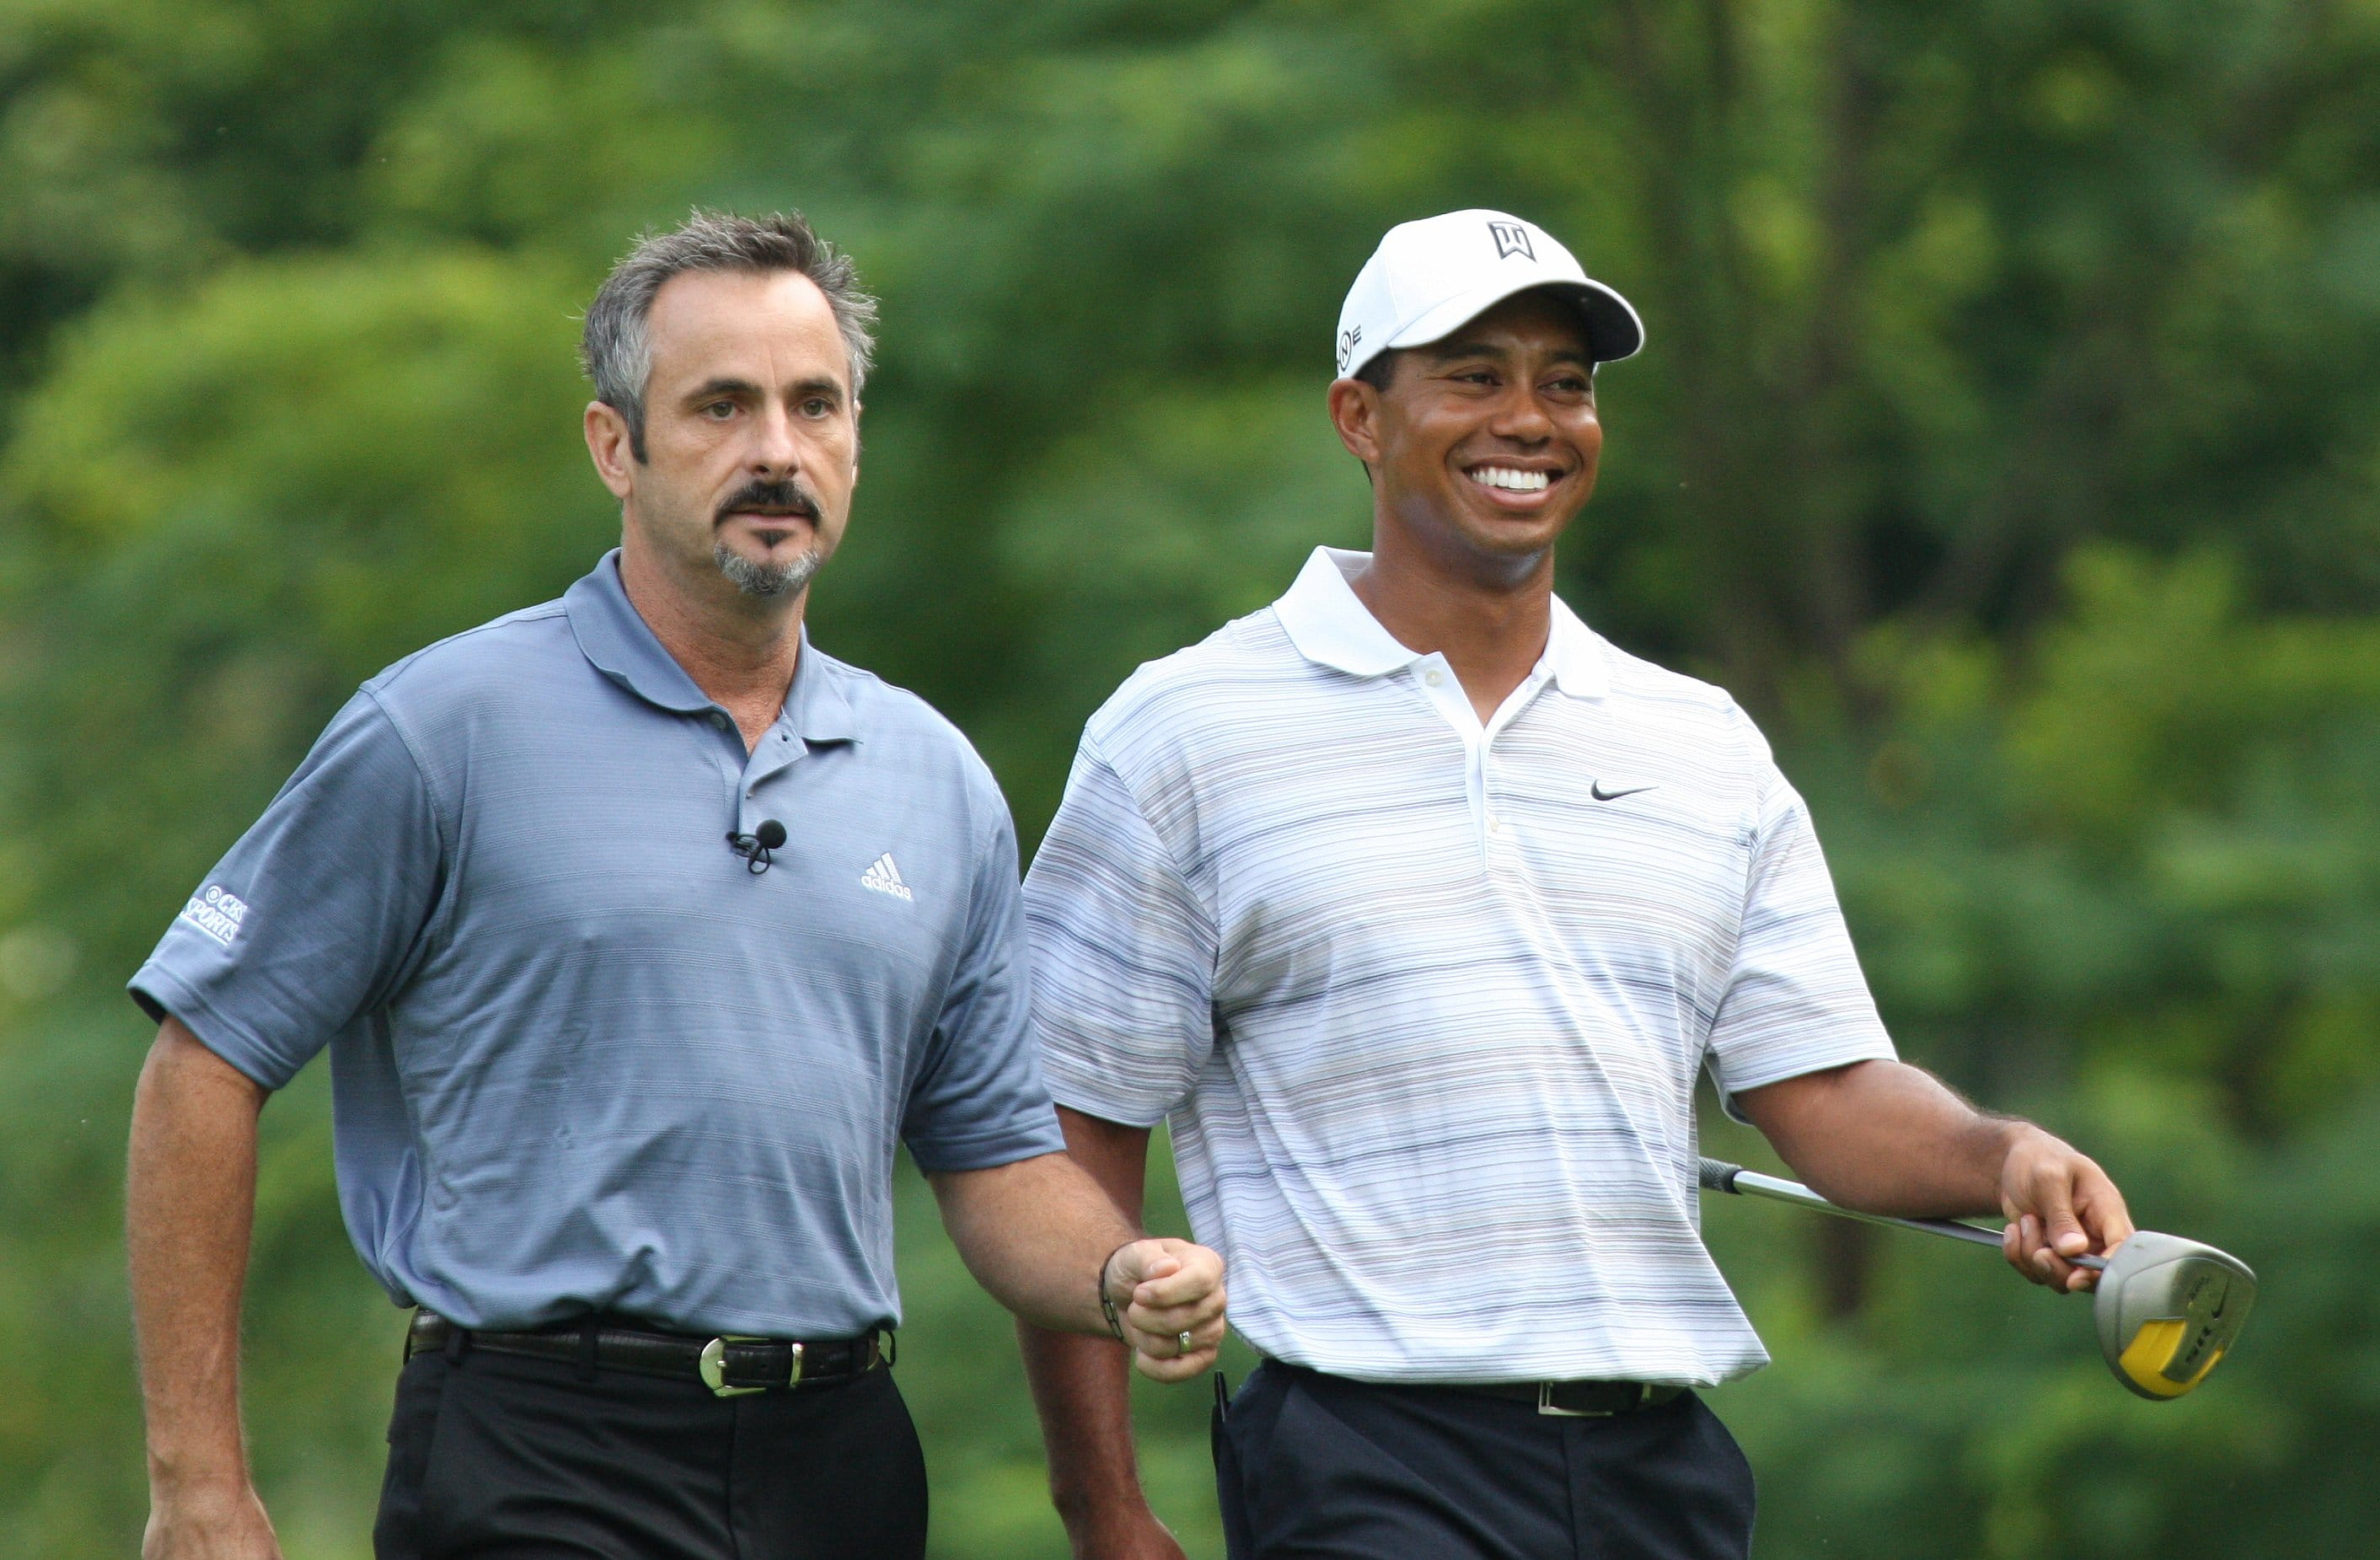 David Feherty and Tiger Woods